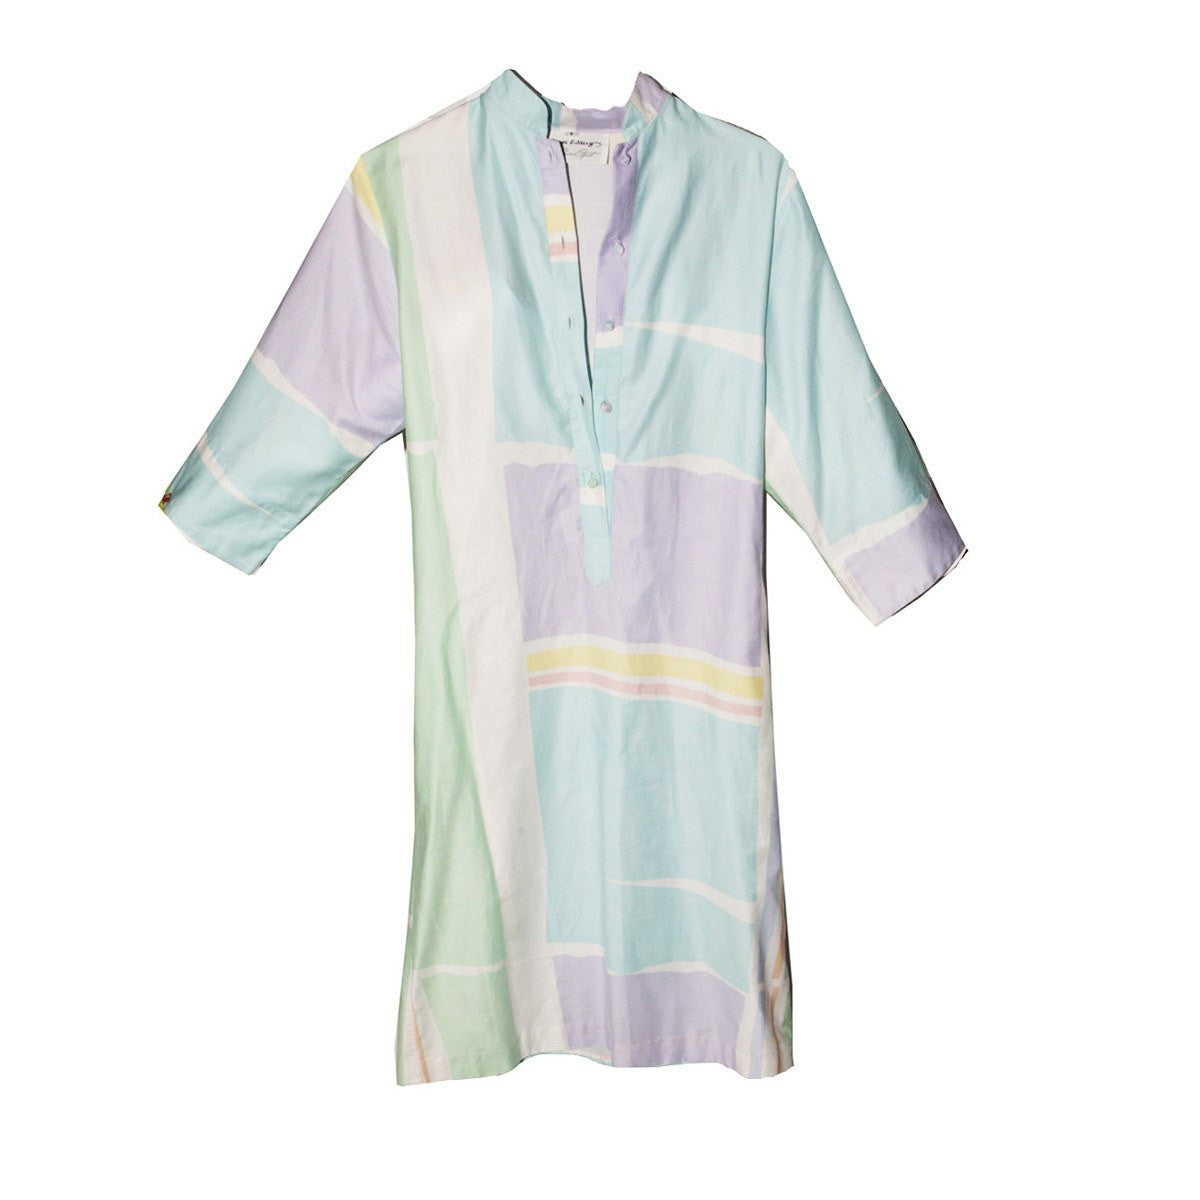 Catherine Ogust Pastel Abstract Print Dress, Vintage 1980s